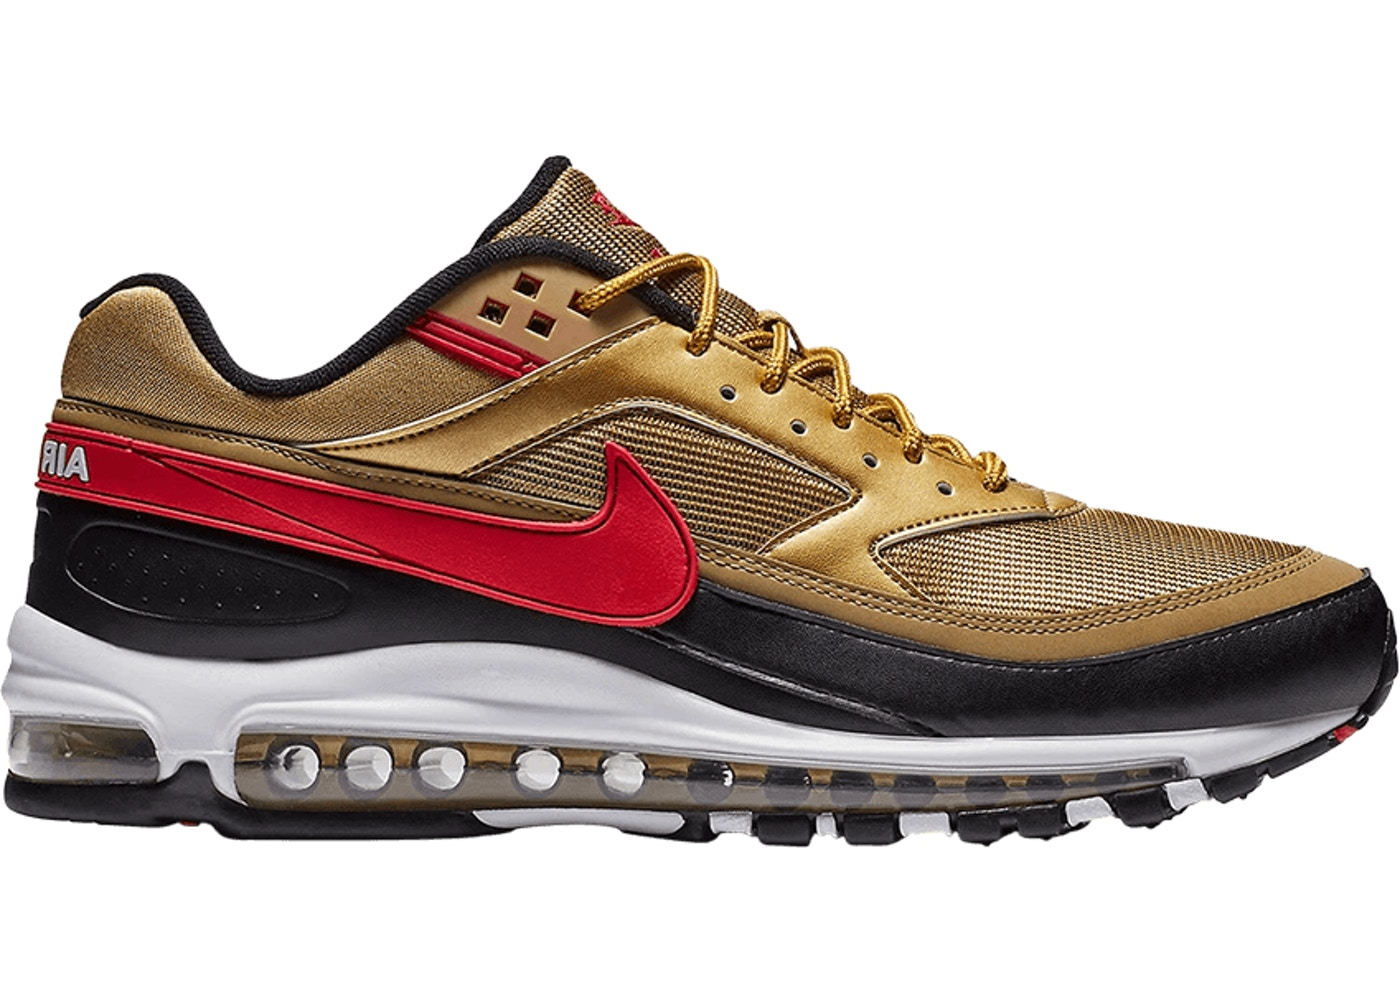 new concept 06a6b 47db5 Air Max 97 BW Metallic Gold University Red Black - AO2406-700